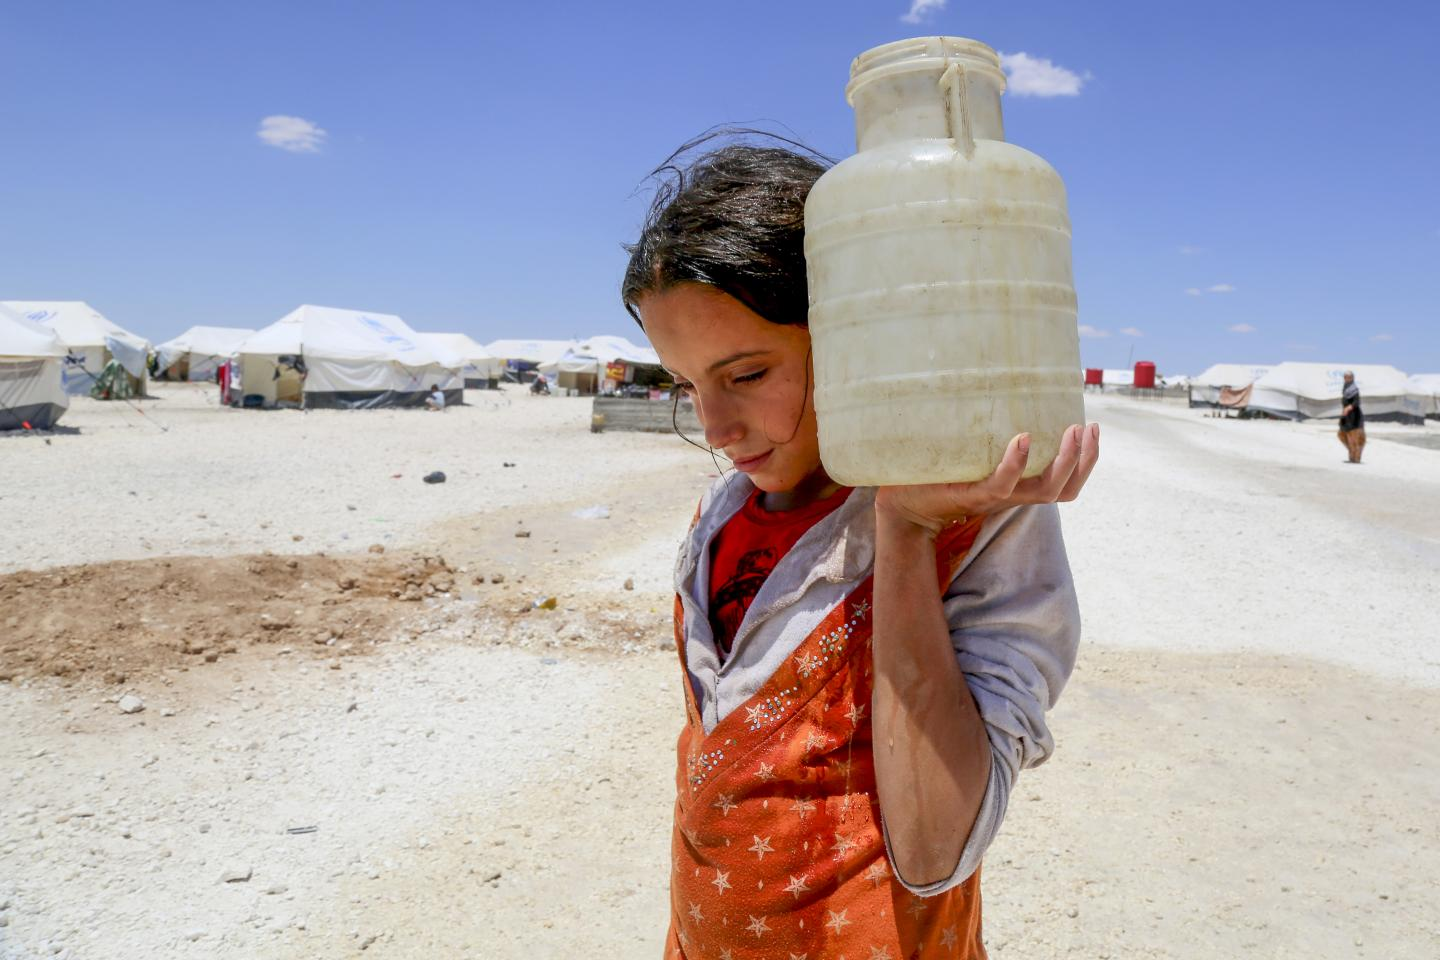 A girl carries water in a refugee camp, Syria